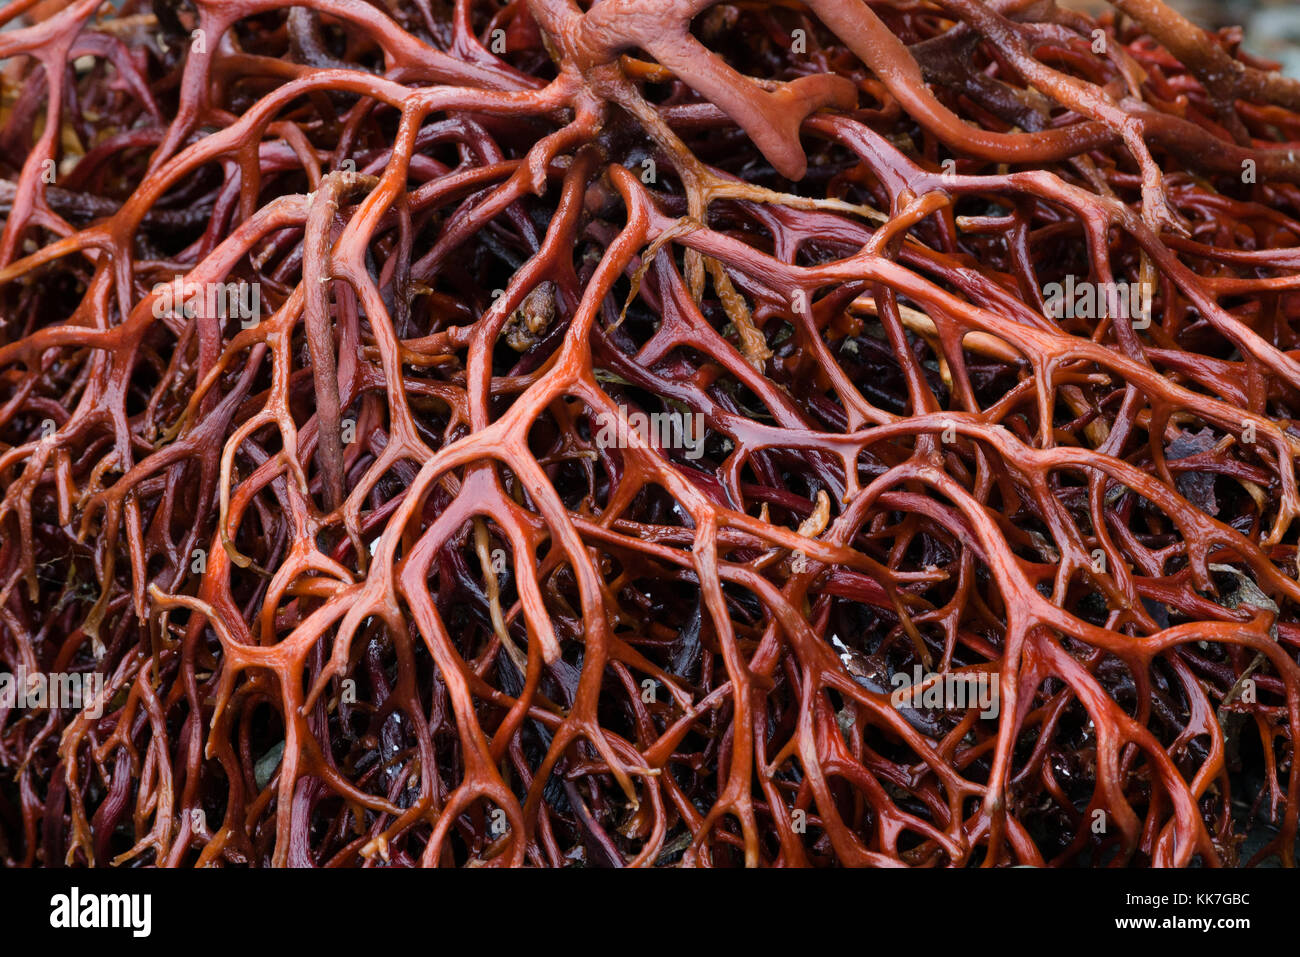 A red algae from the Straits of Magellan, South Chile - Stock Image